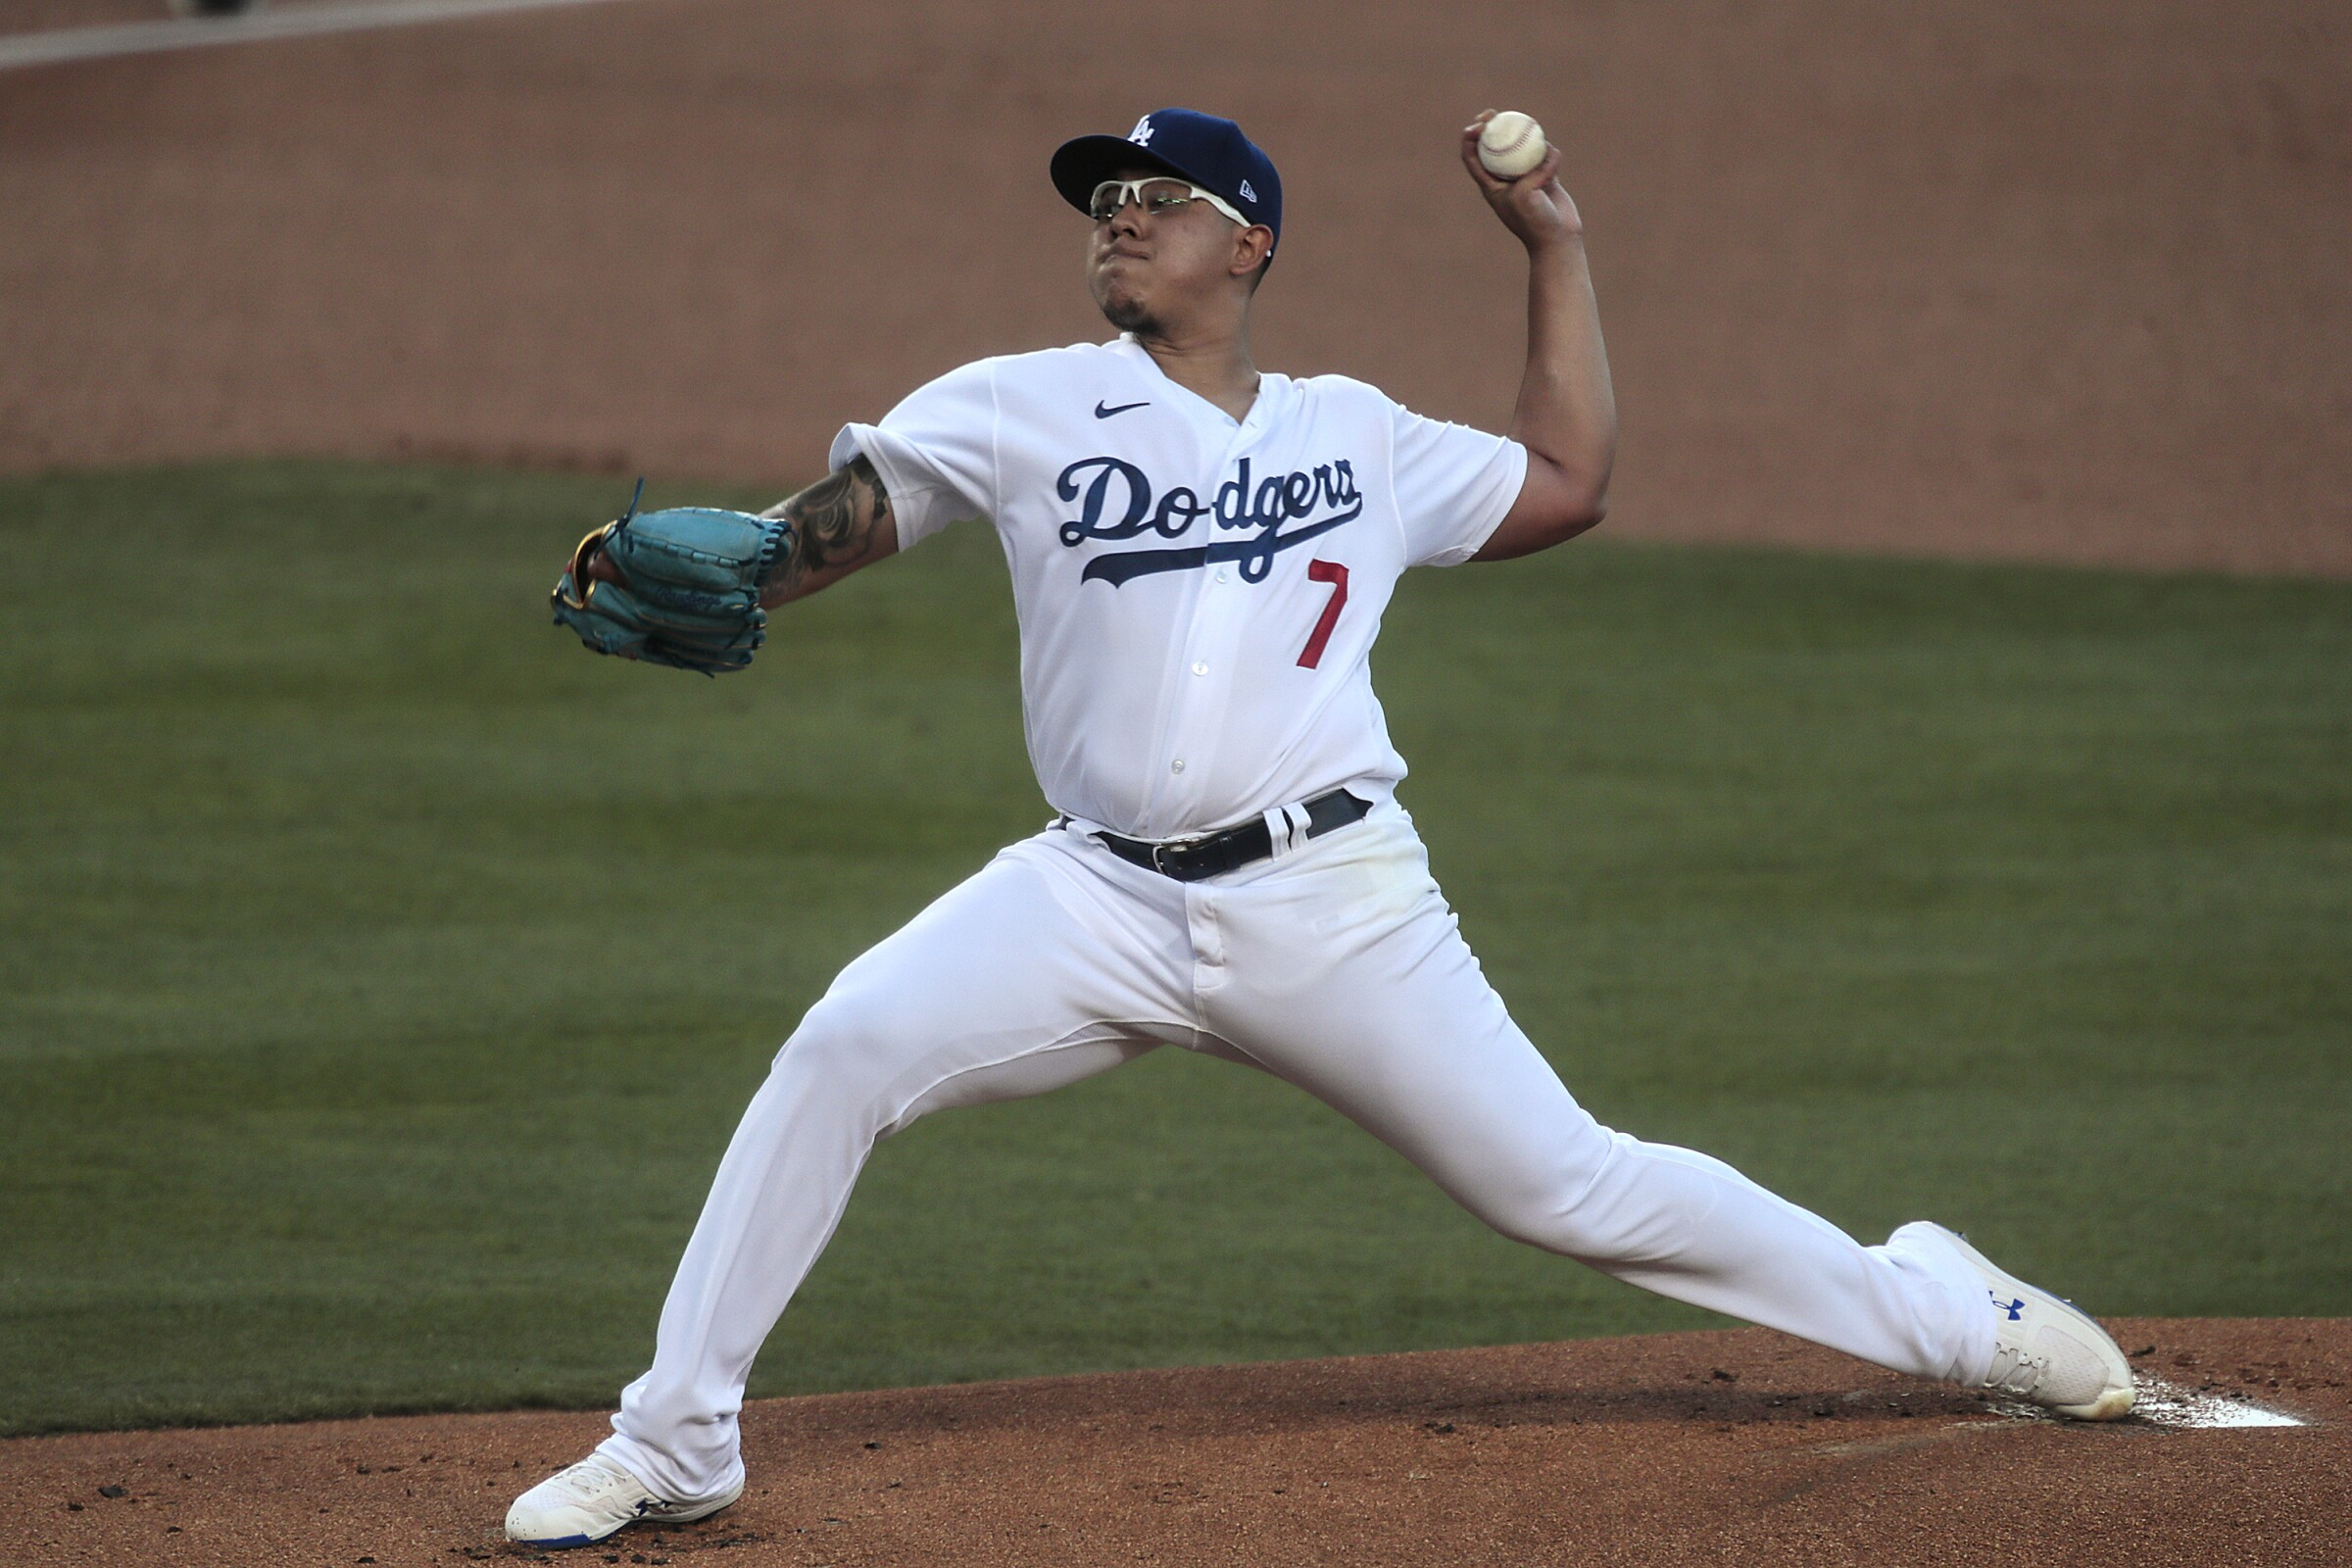 Dodgers pitcher Julio Urias delivers a first-inning pitch against the San Francisco Giants at Dodger Stadium on Sunday.